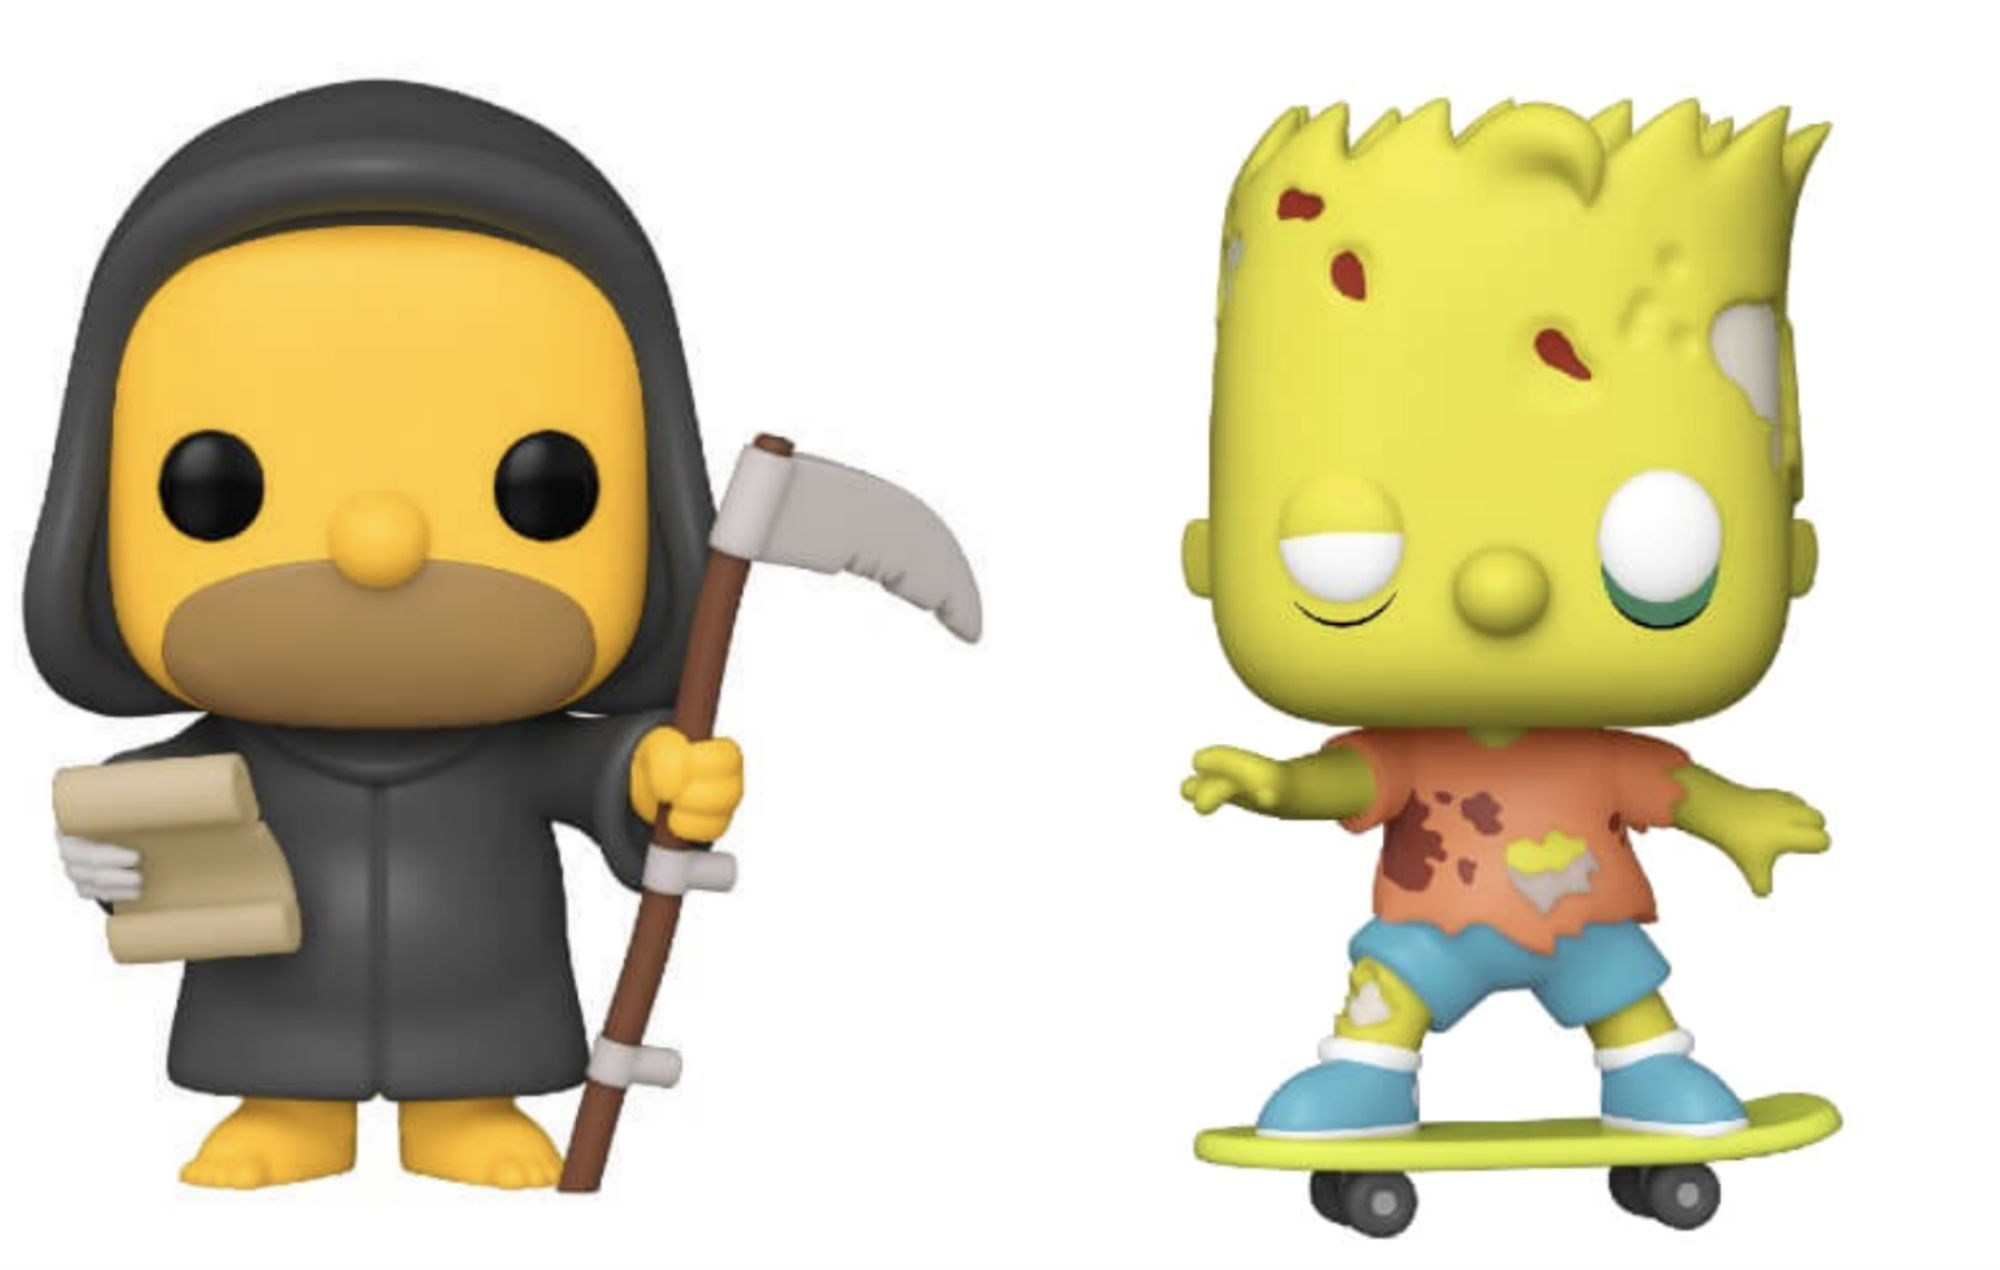 The Simpsons Halloween 2020 The Simpsons': new 'Treehouse Of Horror' Funko POP!s released